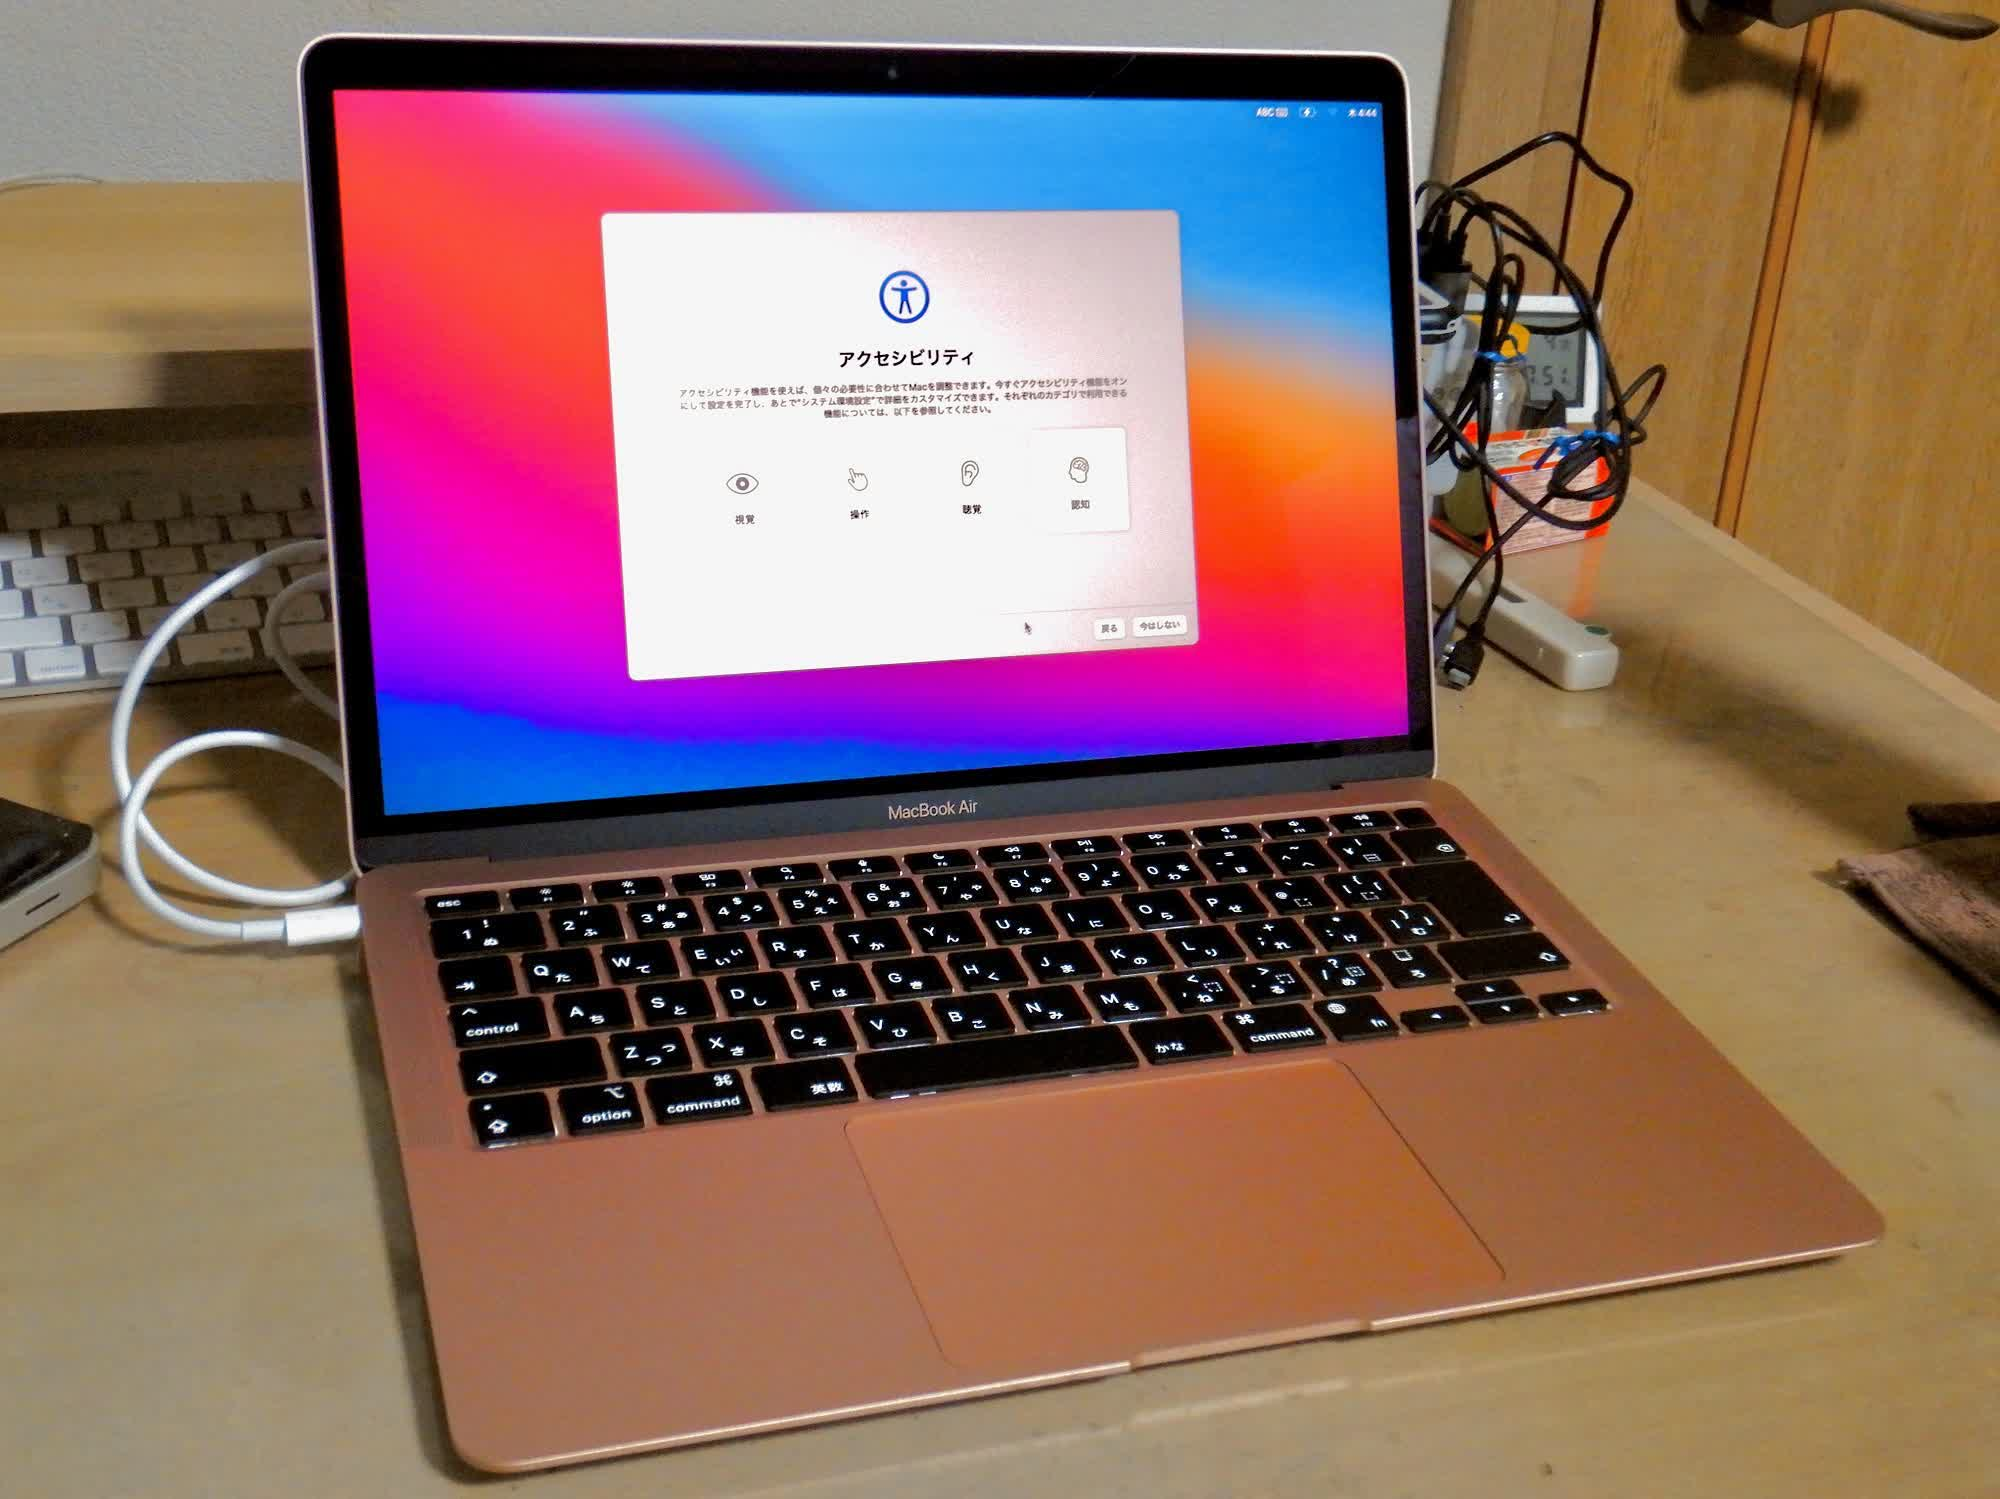 Apple faces potential class-action lawsuit over cracking M1 MacBook screens